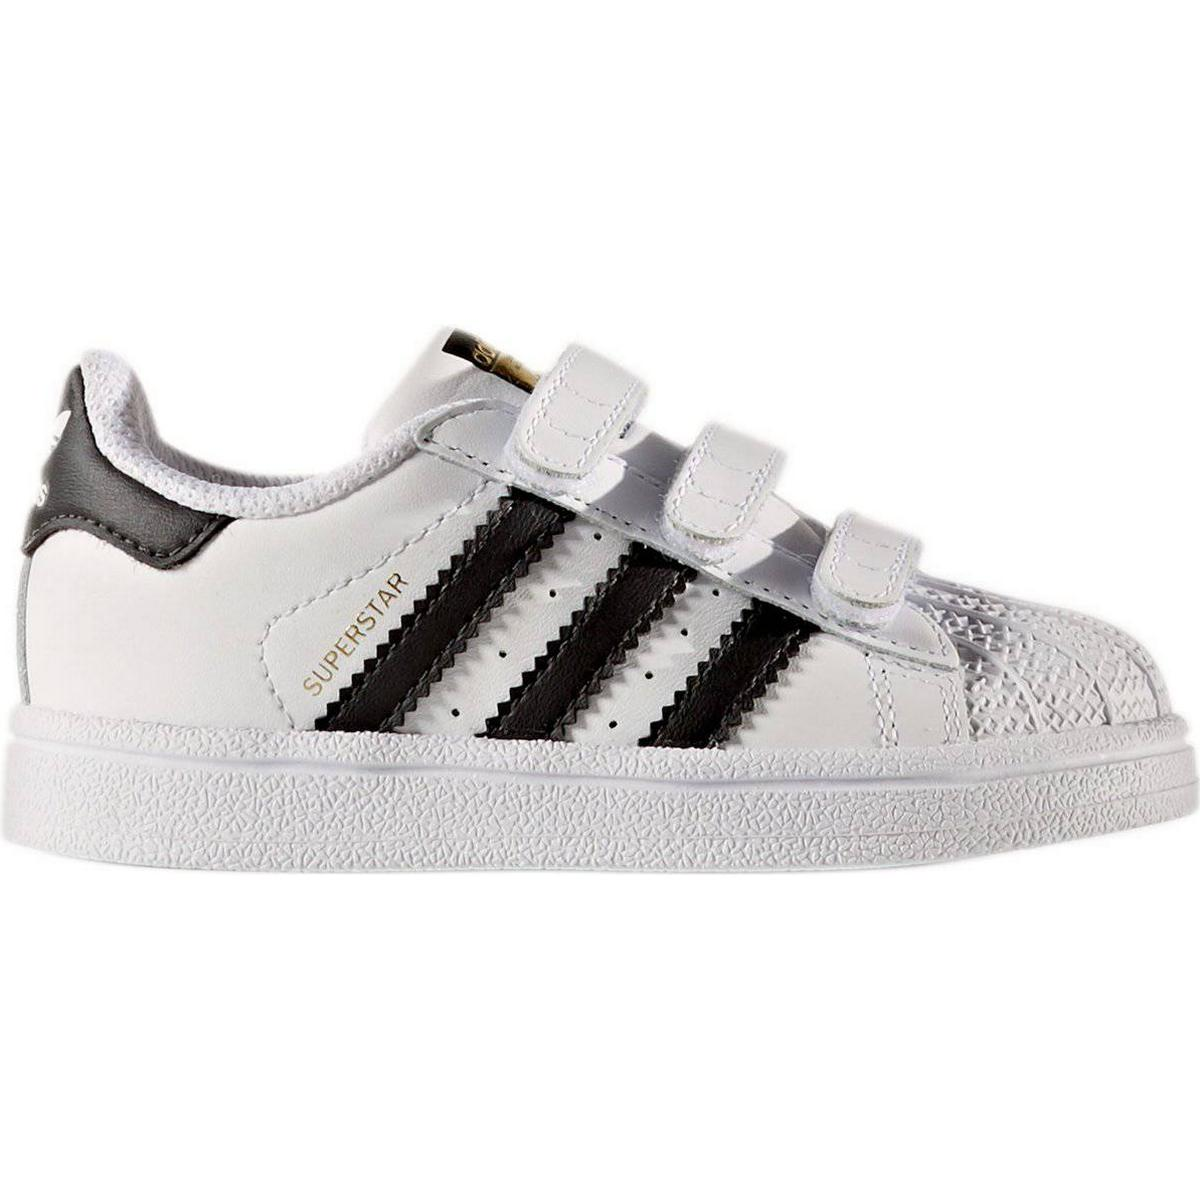 Adidas superstar 4.5 youth Adidas superstar. White and black